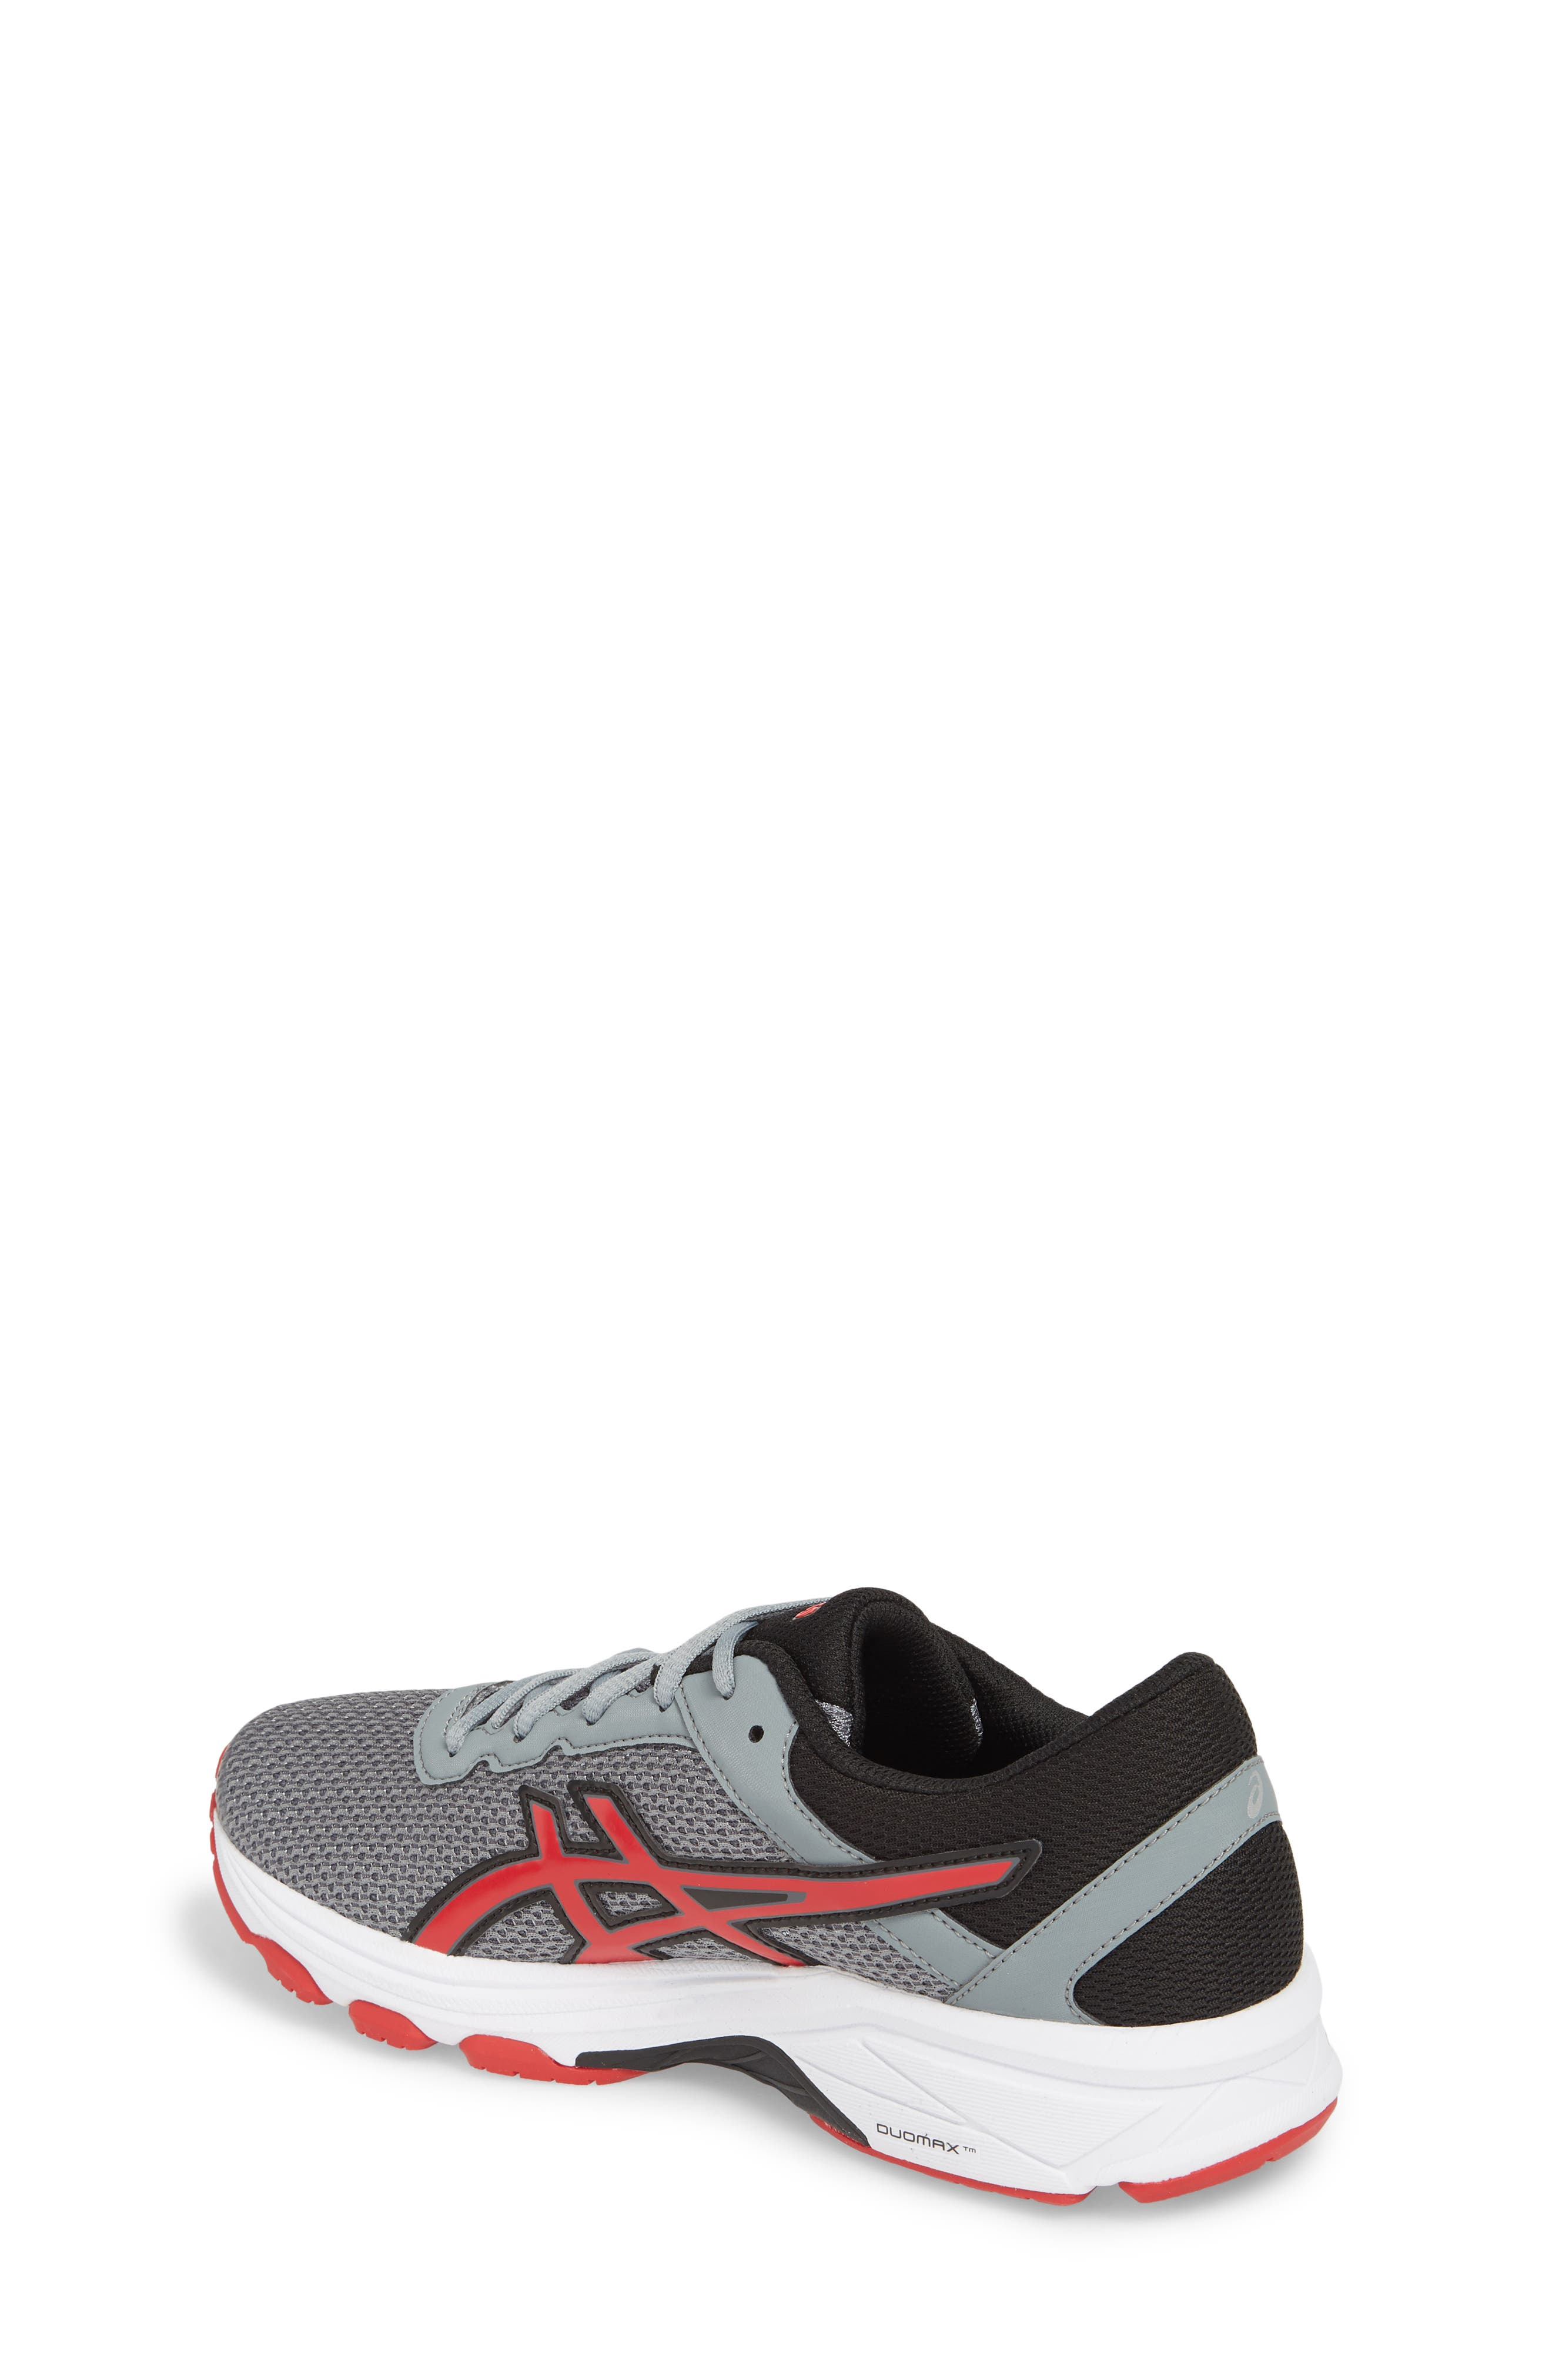 Asics GT-1000<sup>™</sup> 6 GS Sneaker,                             Alternate thumbnail 2, color,                             Stone Grey/ Classic Red/ Black